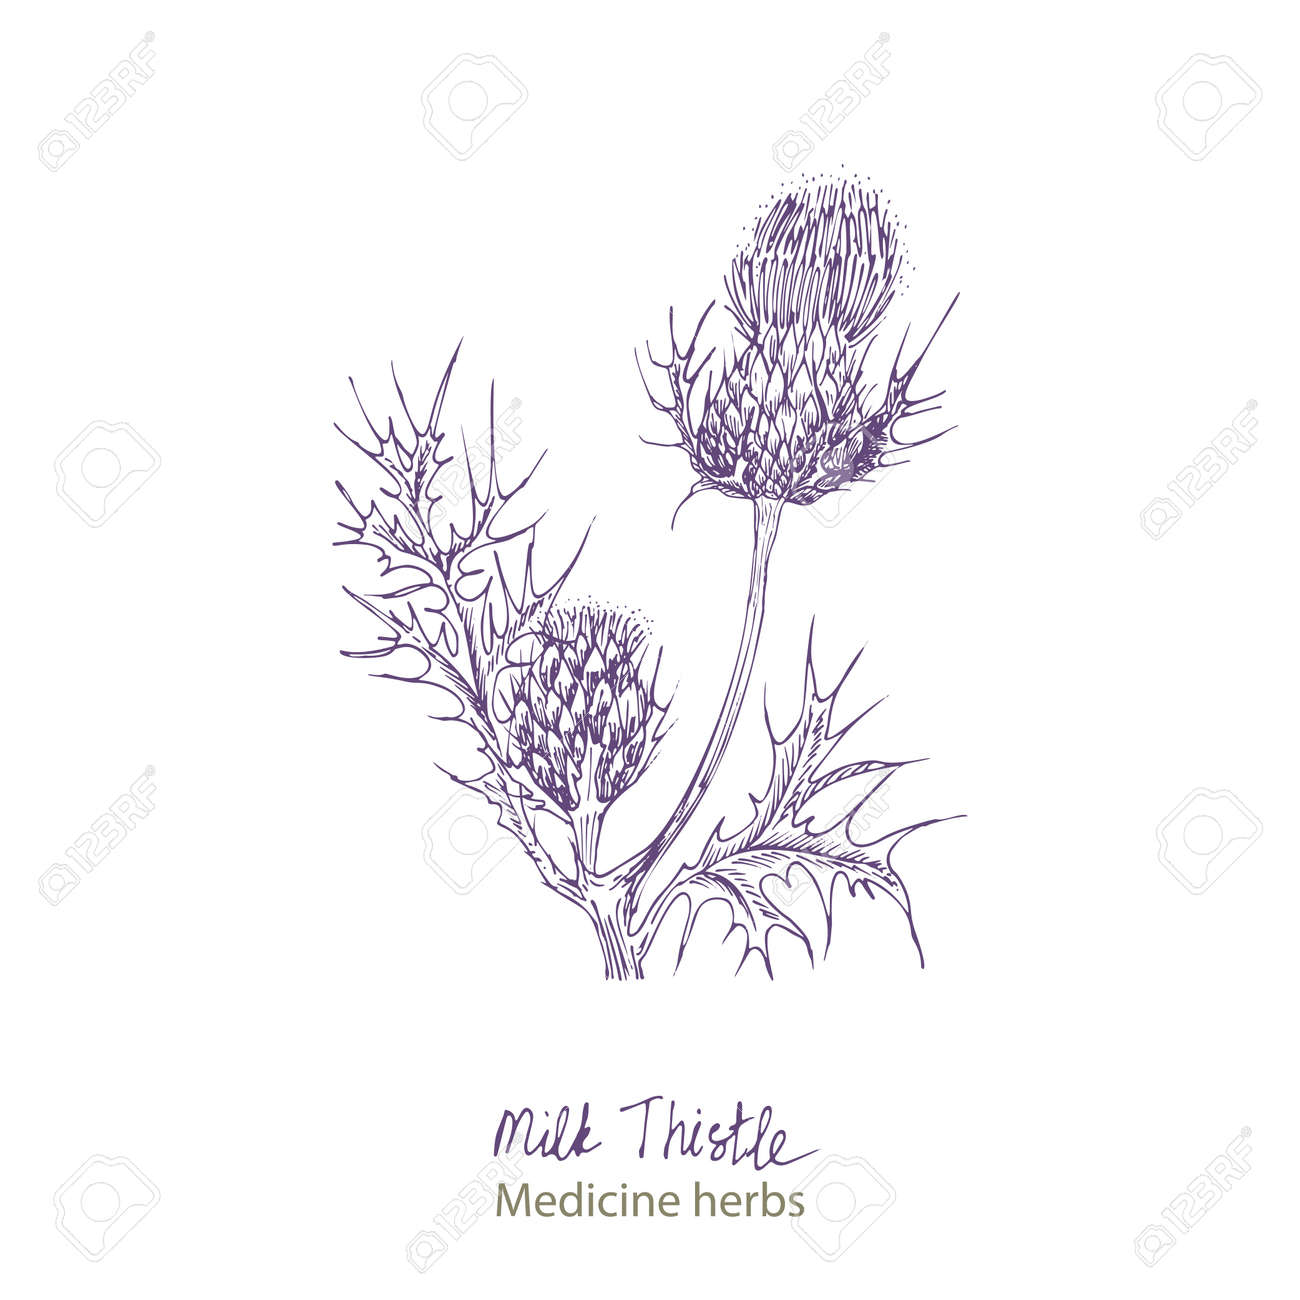 Set hand drawn of Milk Thistle, lives and flowers in black color isolated on white background. Retro vintage graphic design. Botanical sketch drawing, engraving style. Vector. - 162597304